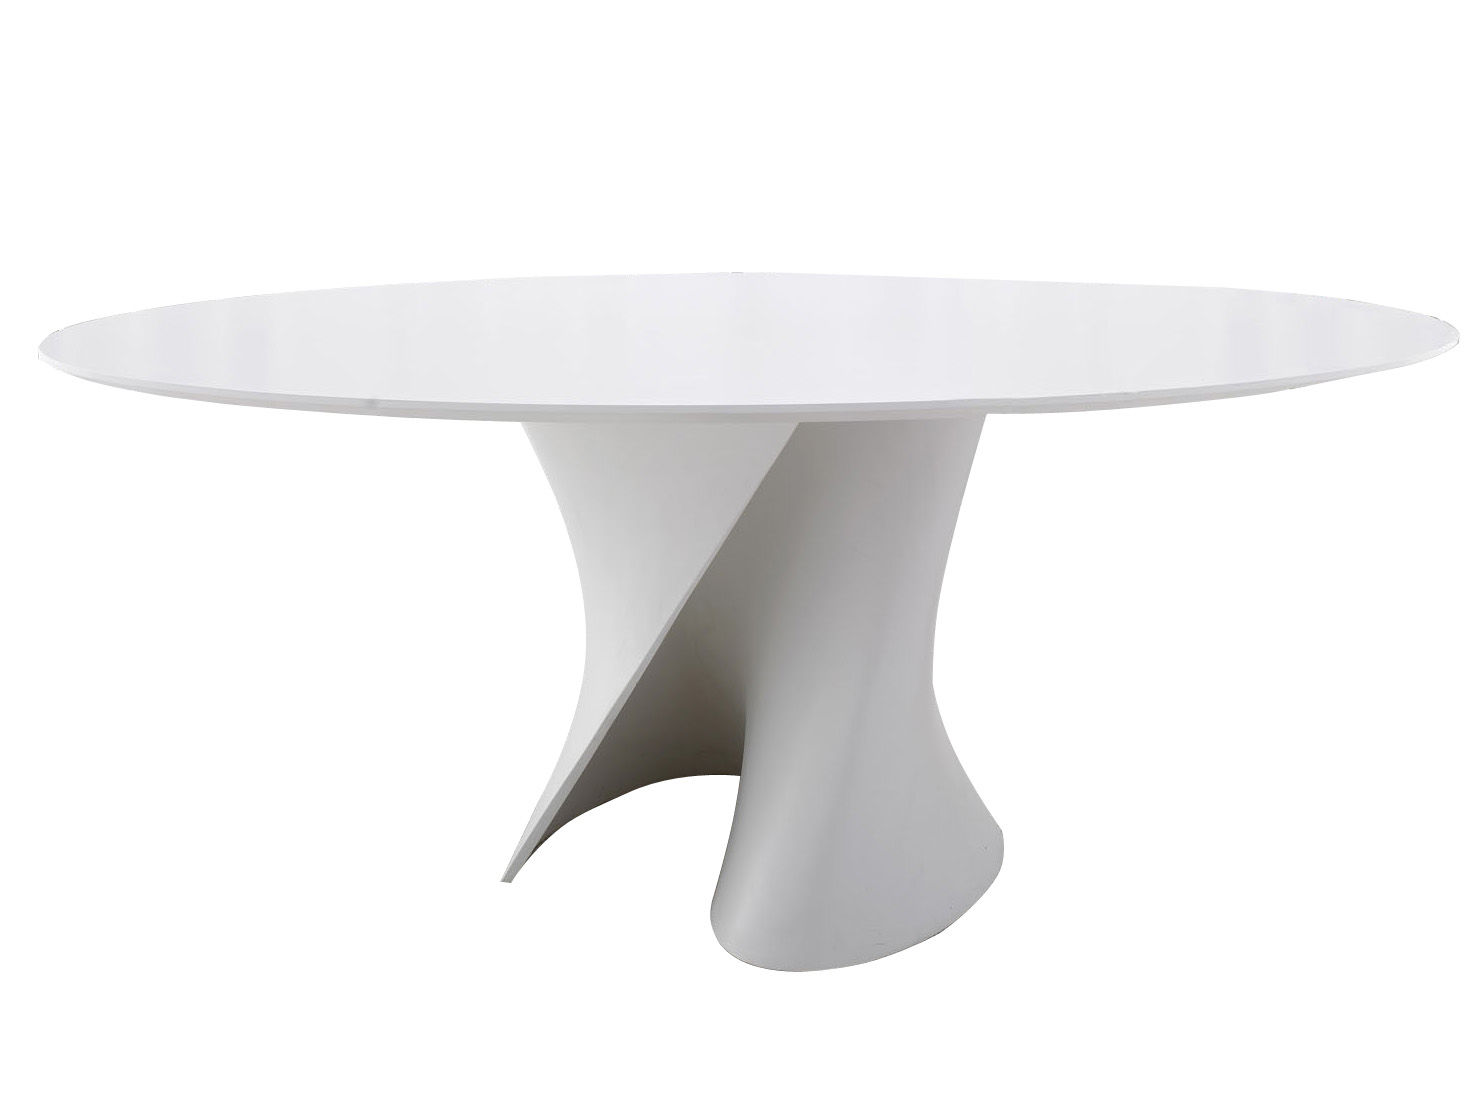 Table Ovale S Ovale Table Oval 150 X 210 Cm By Mdf Italia